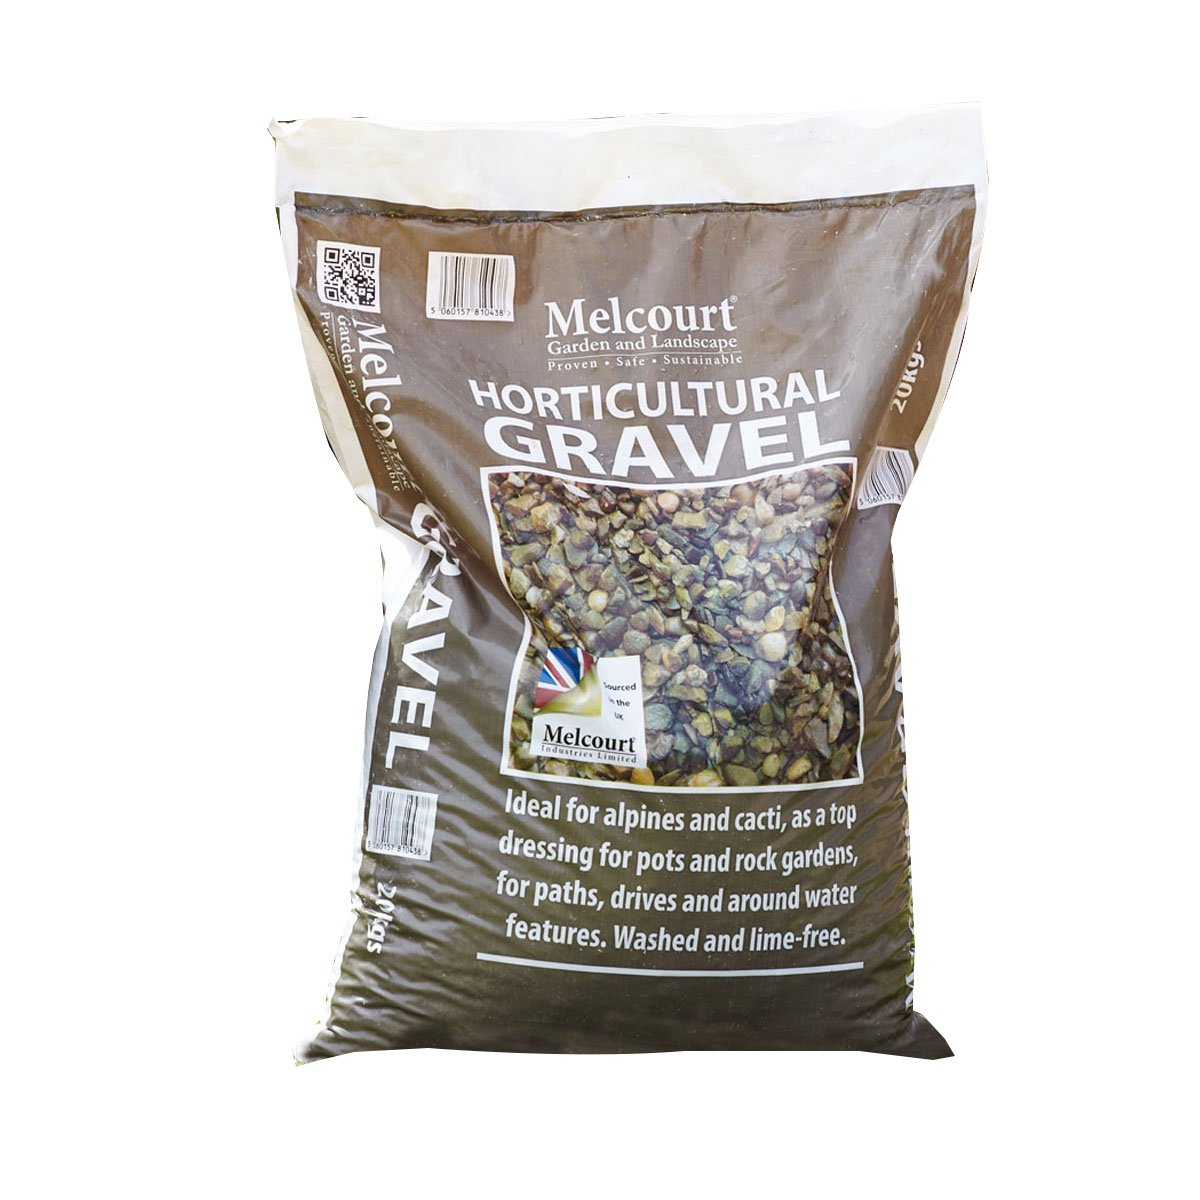 Suregreen Melcourt Horticultural Gravel 20Kg Bag Multipurpose Gravel 4-10mm Particle Size